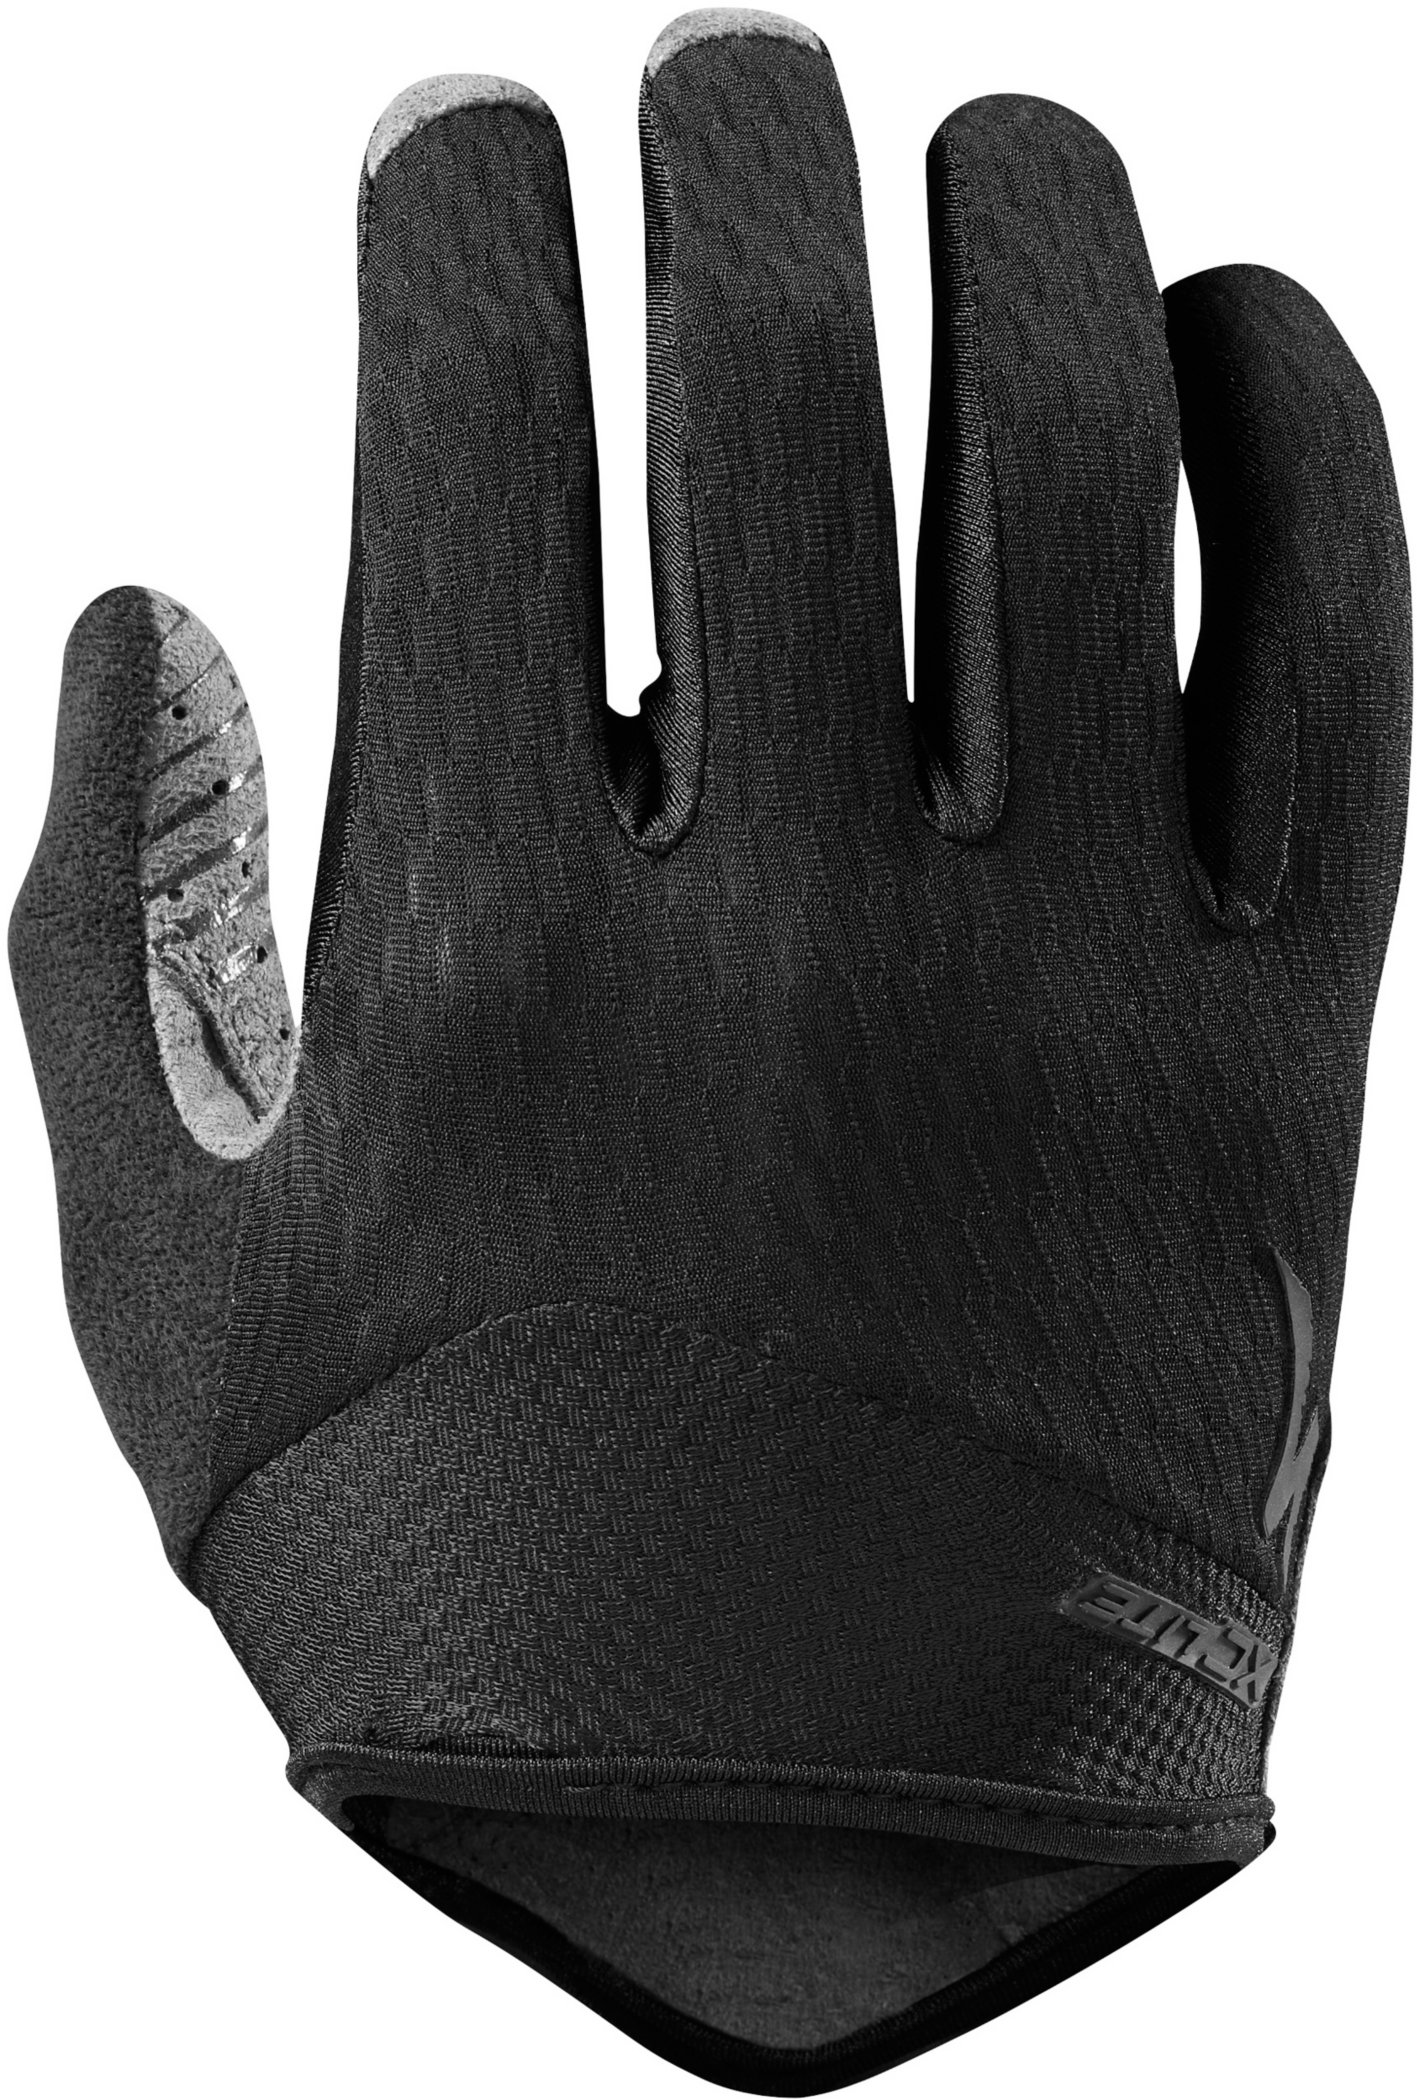 Specialized XC Lite Gloves Black/Black Large - Alpha Bikes